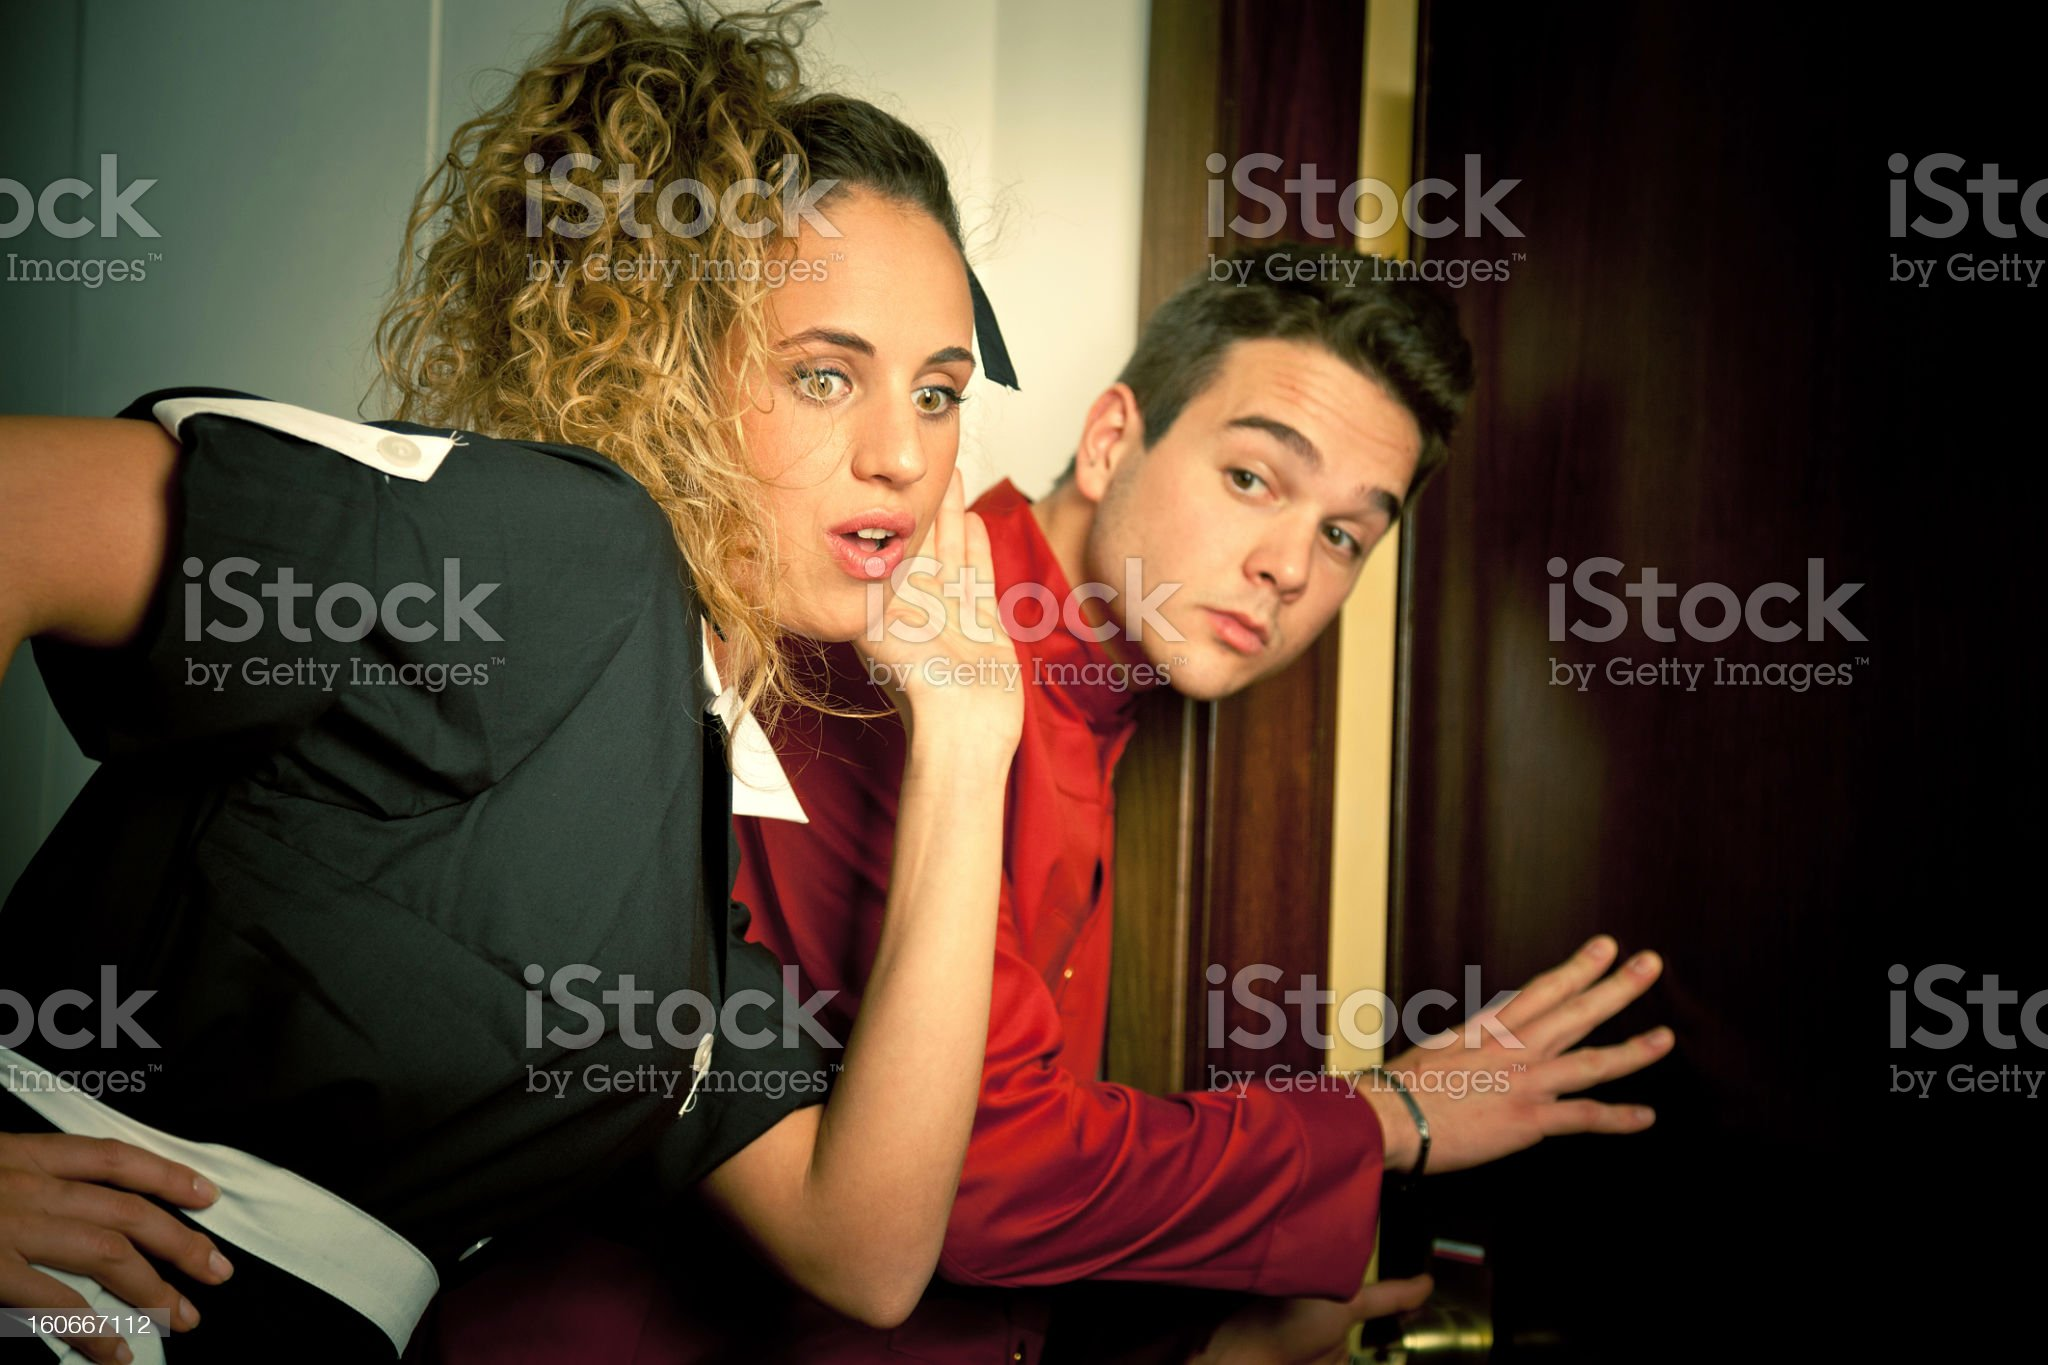 Maid and porter eavesdropping at an hotel door royalty-free stock photo